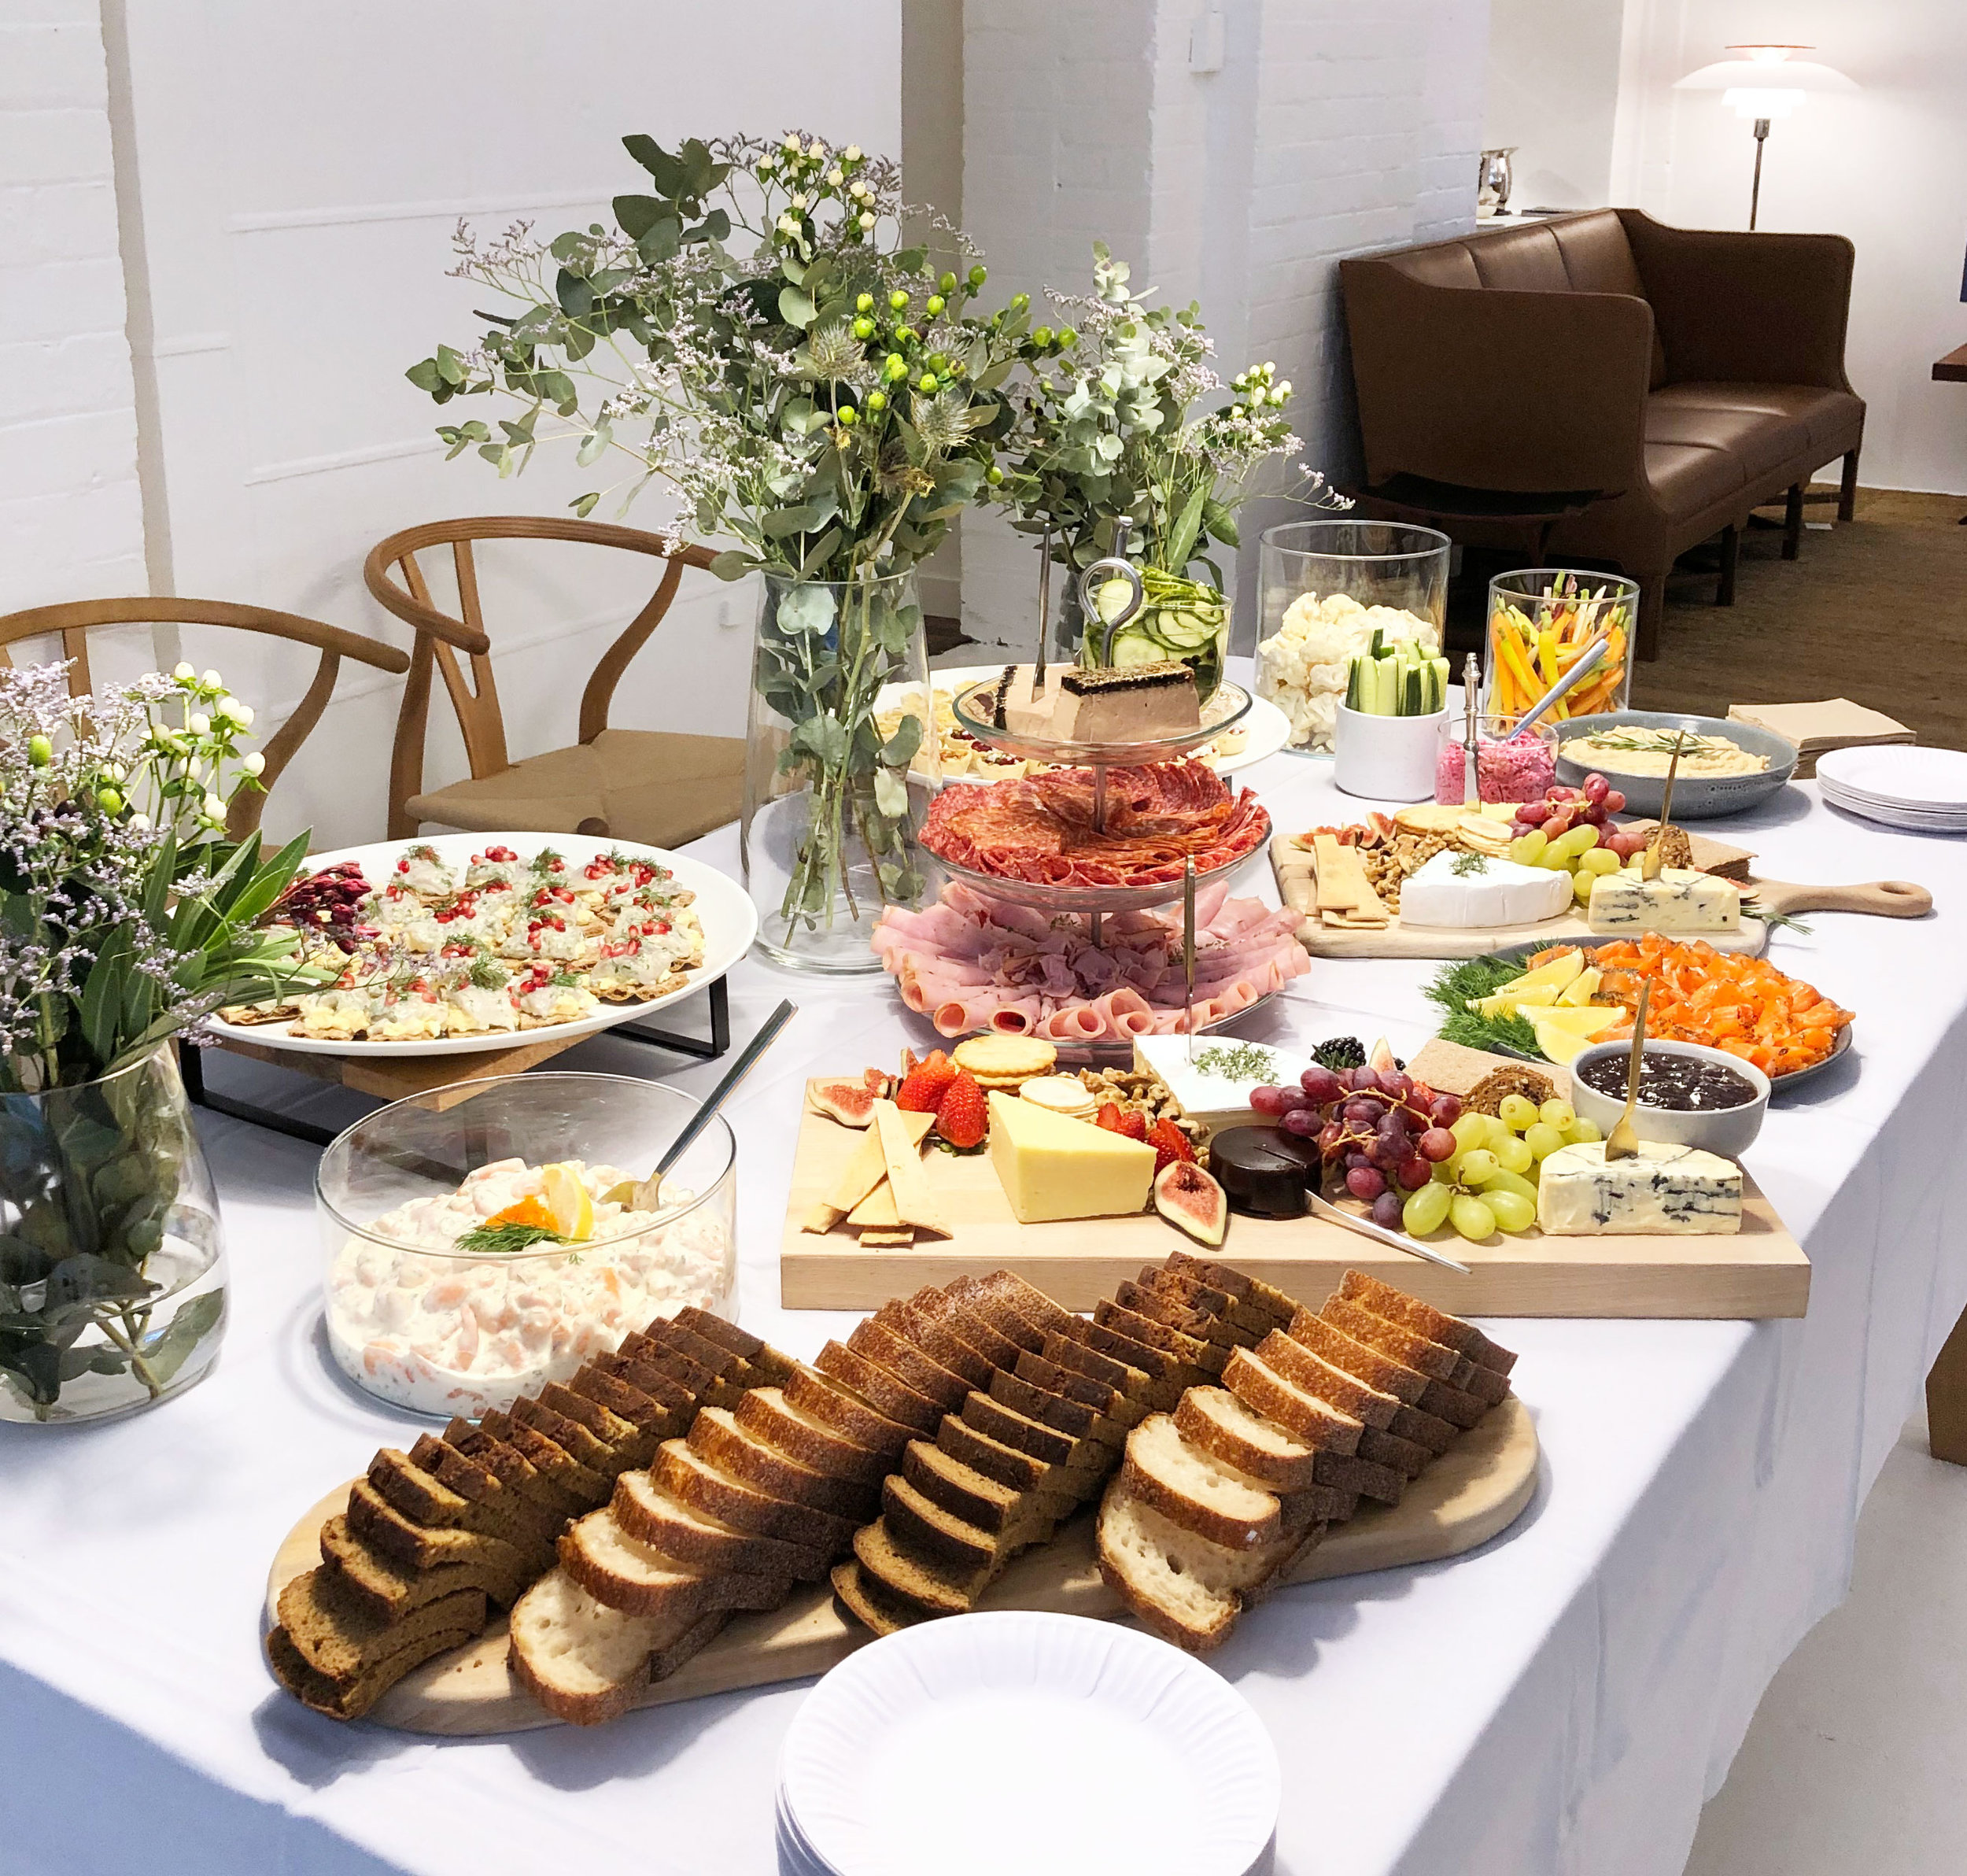 Grazing table for Anna-Carin Design's book launch at Cult